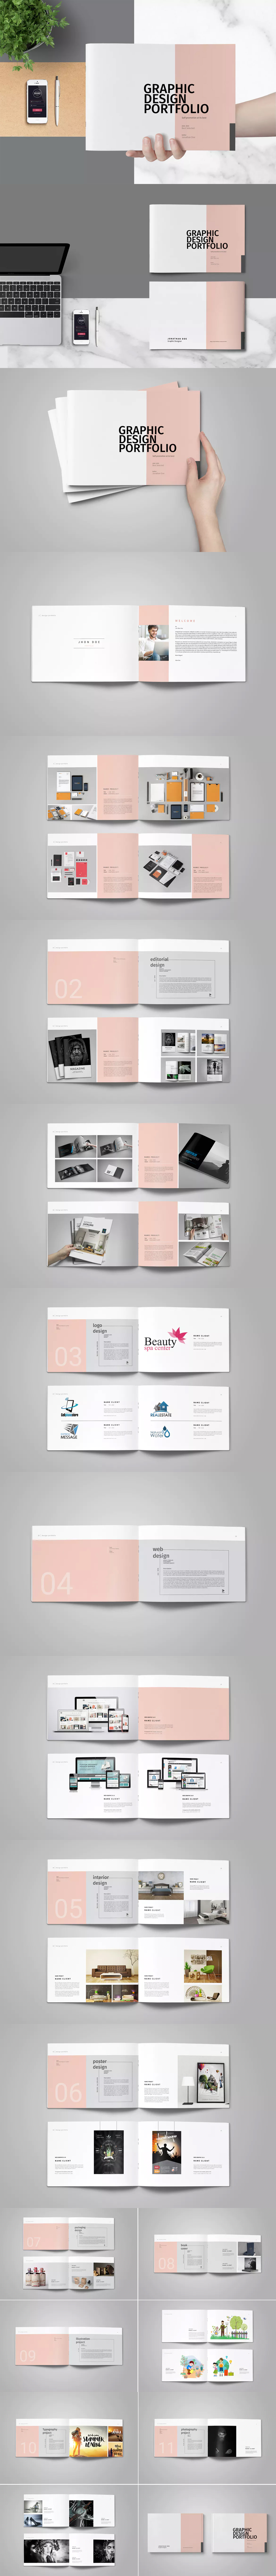 Graphic Design Portfolio Template InDesign INDD A4 and US Letter ...